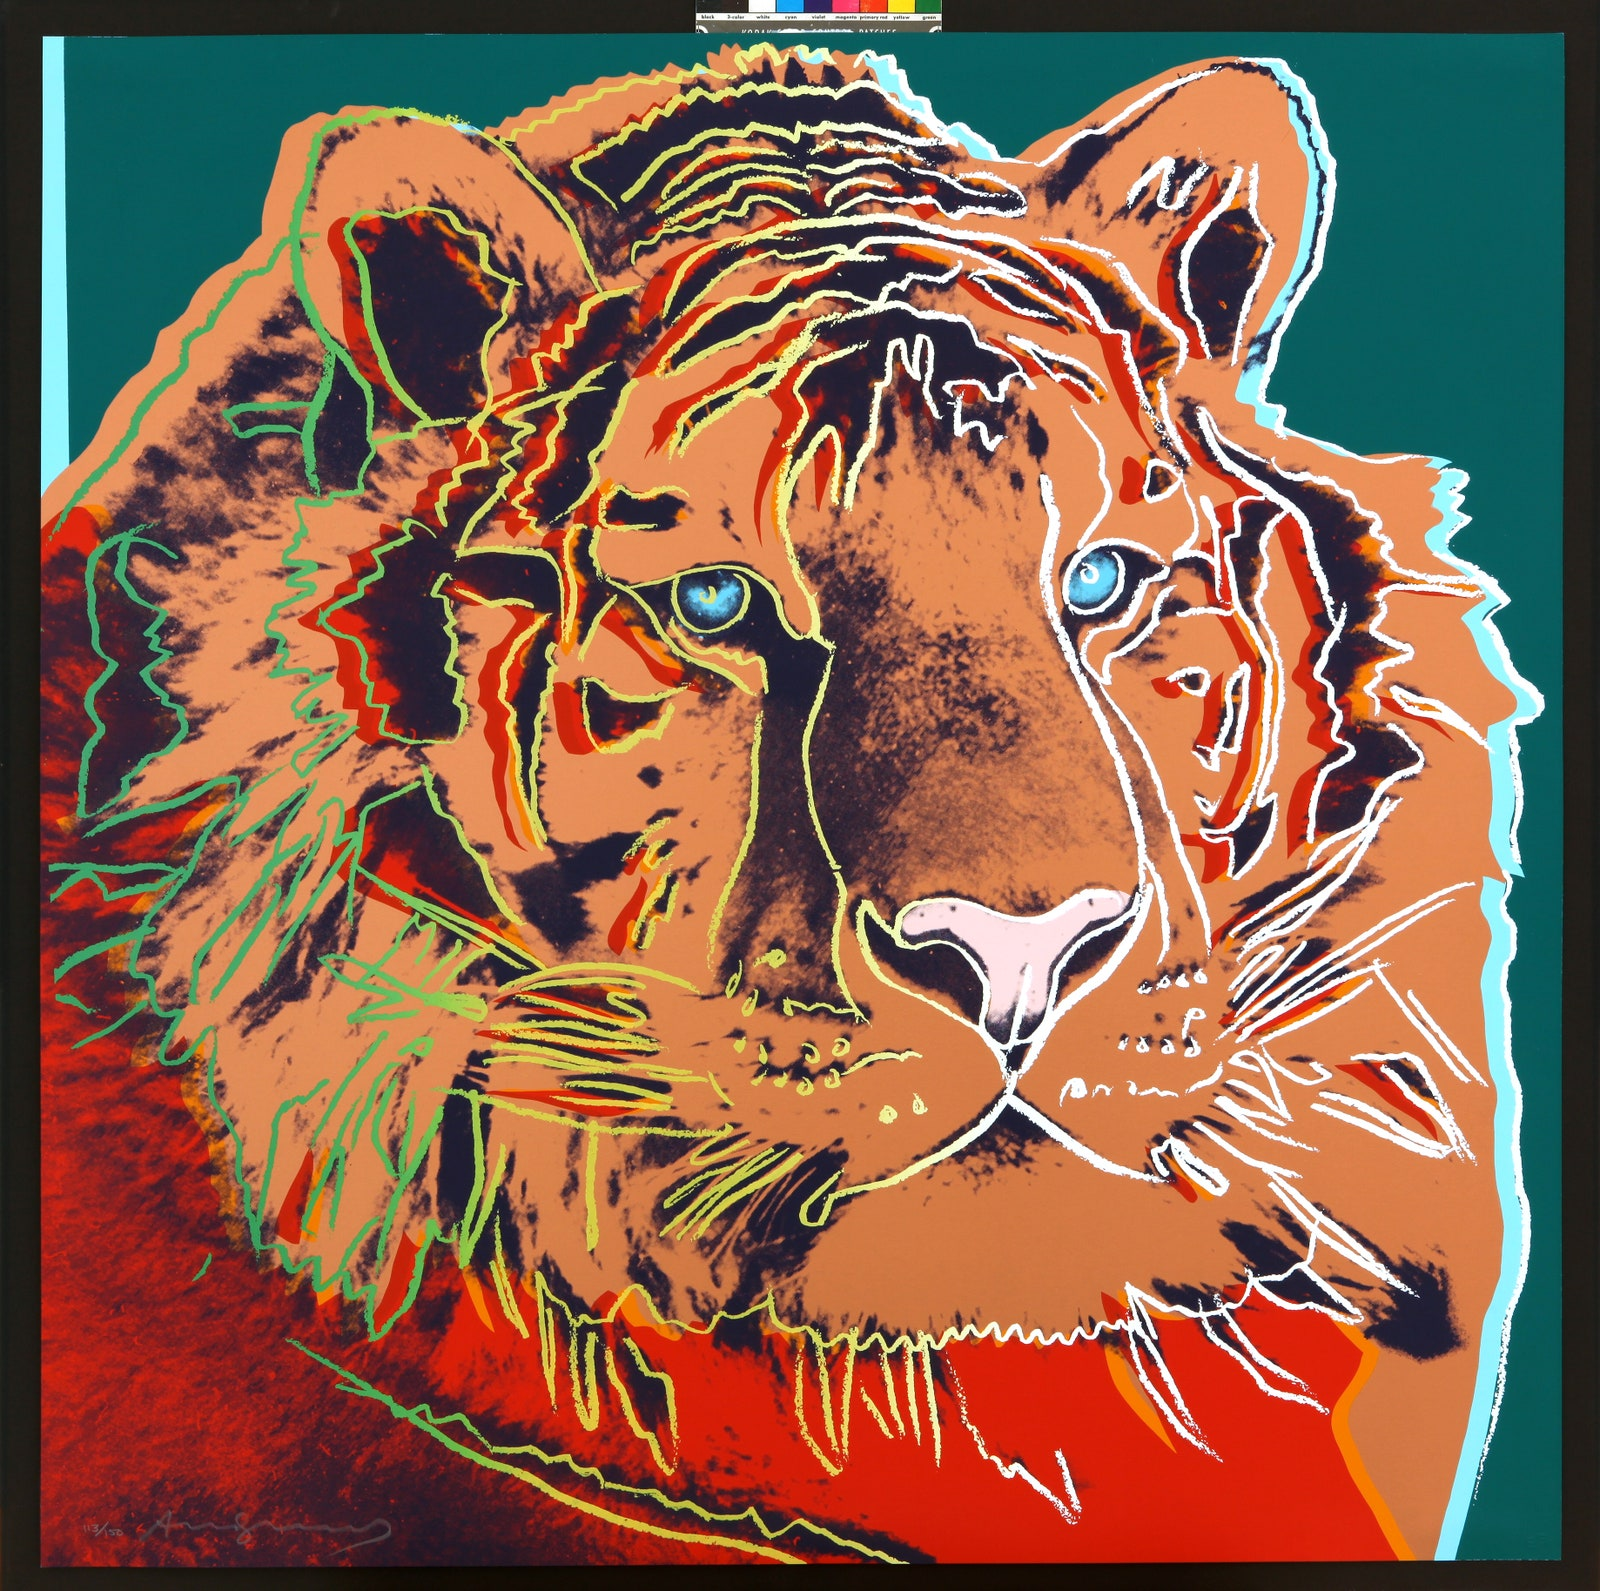 All Andy Warhol artwork 2018 The Andy Warhol Foundation for the Visual Arts